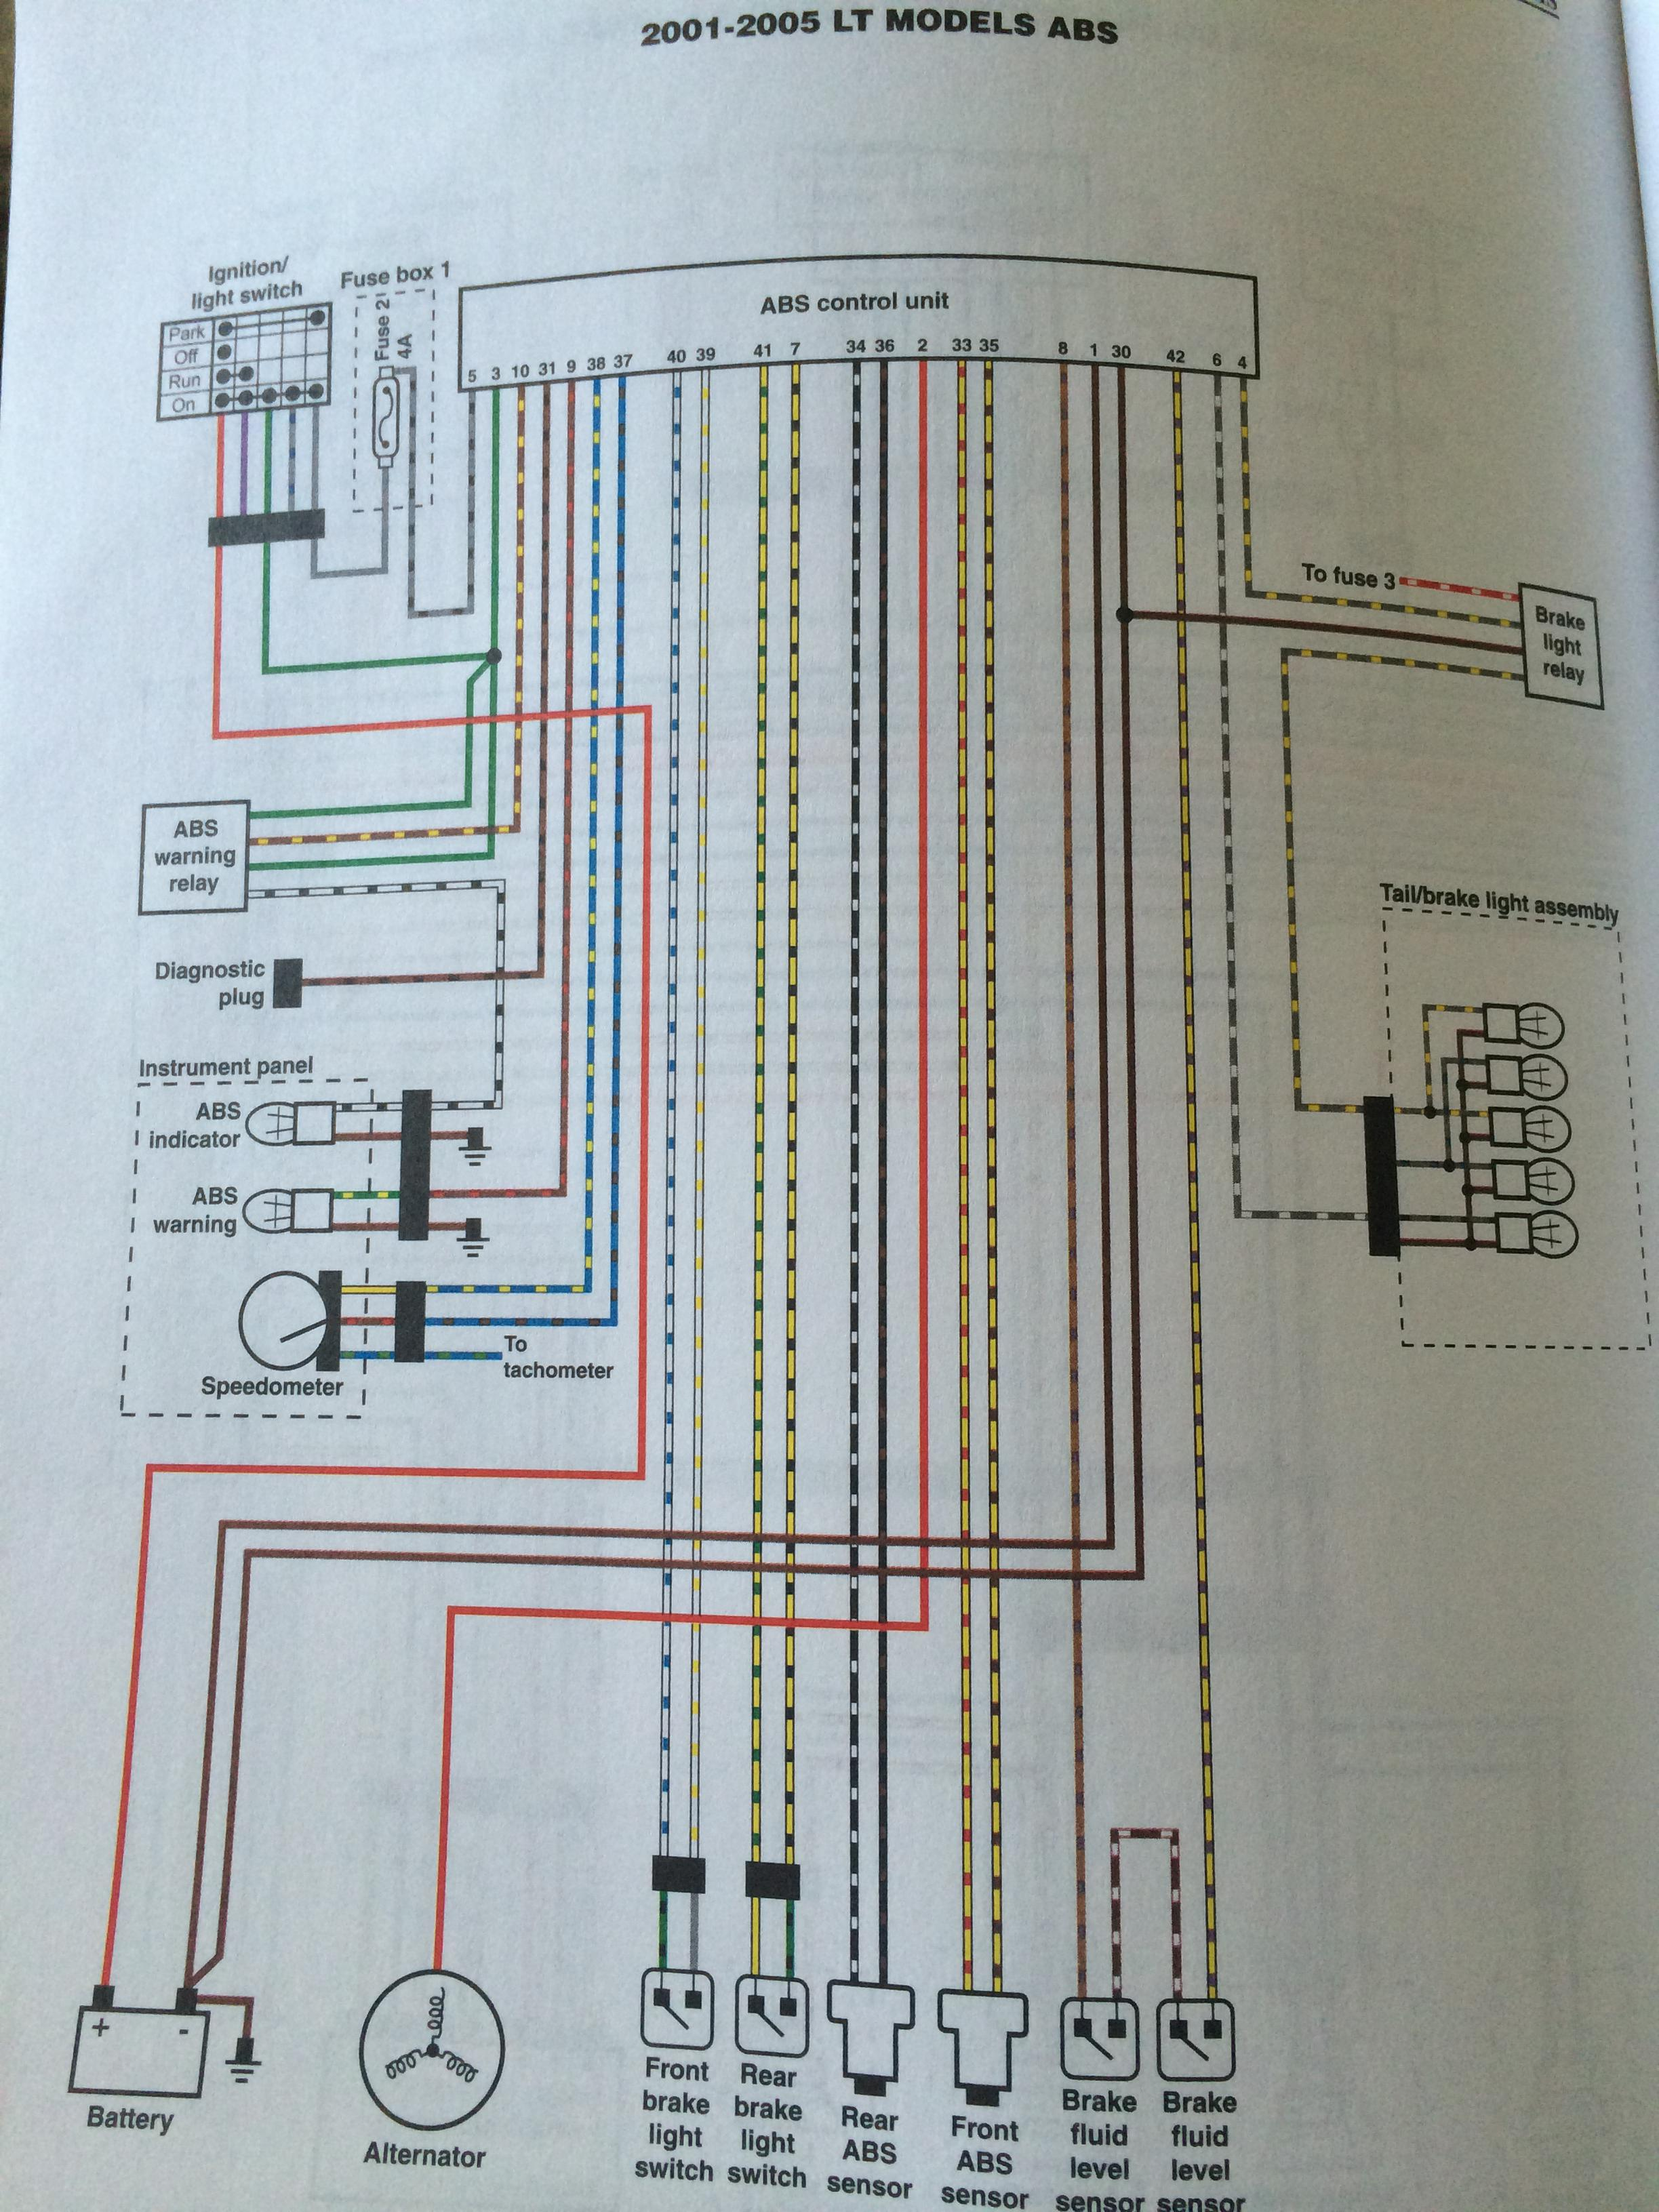 bmw abs wiring diagram  | 2447 x 3263